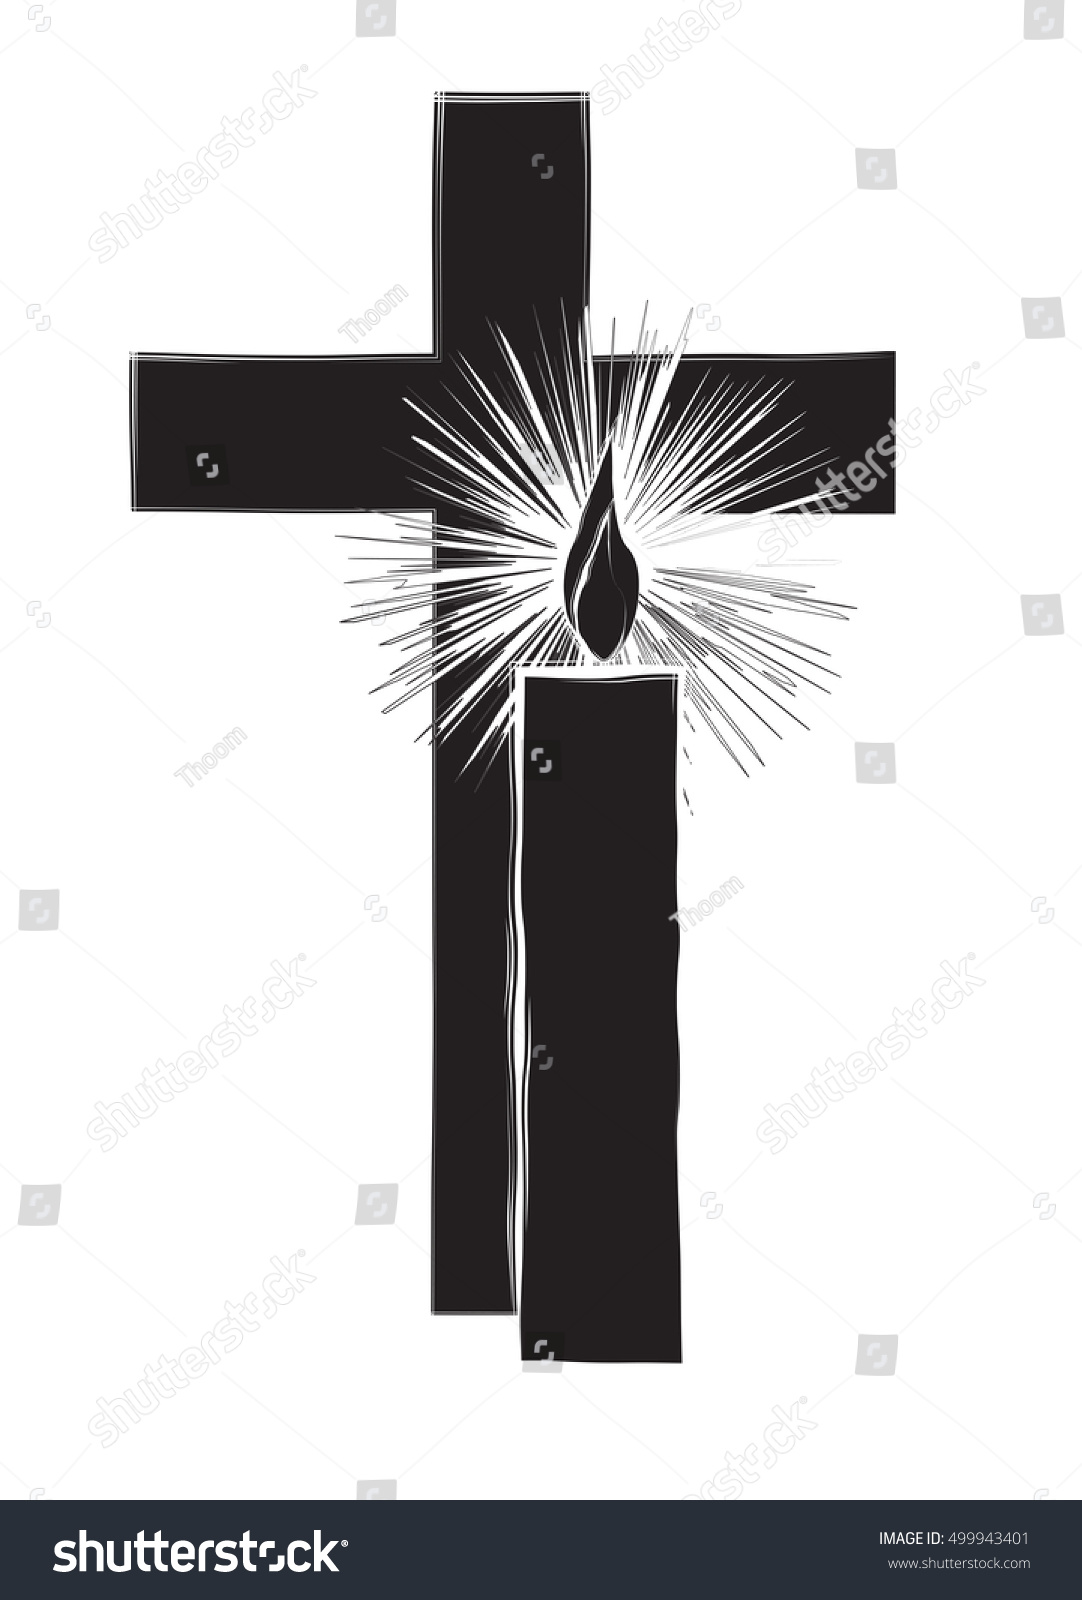 Funeral Christian Death Remembrance Religious Christian Stock Vector